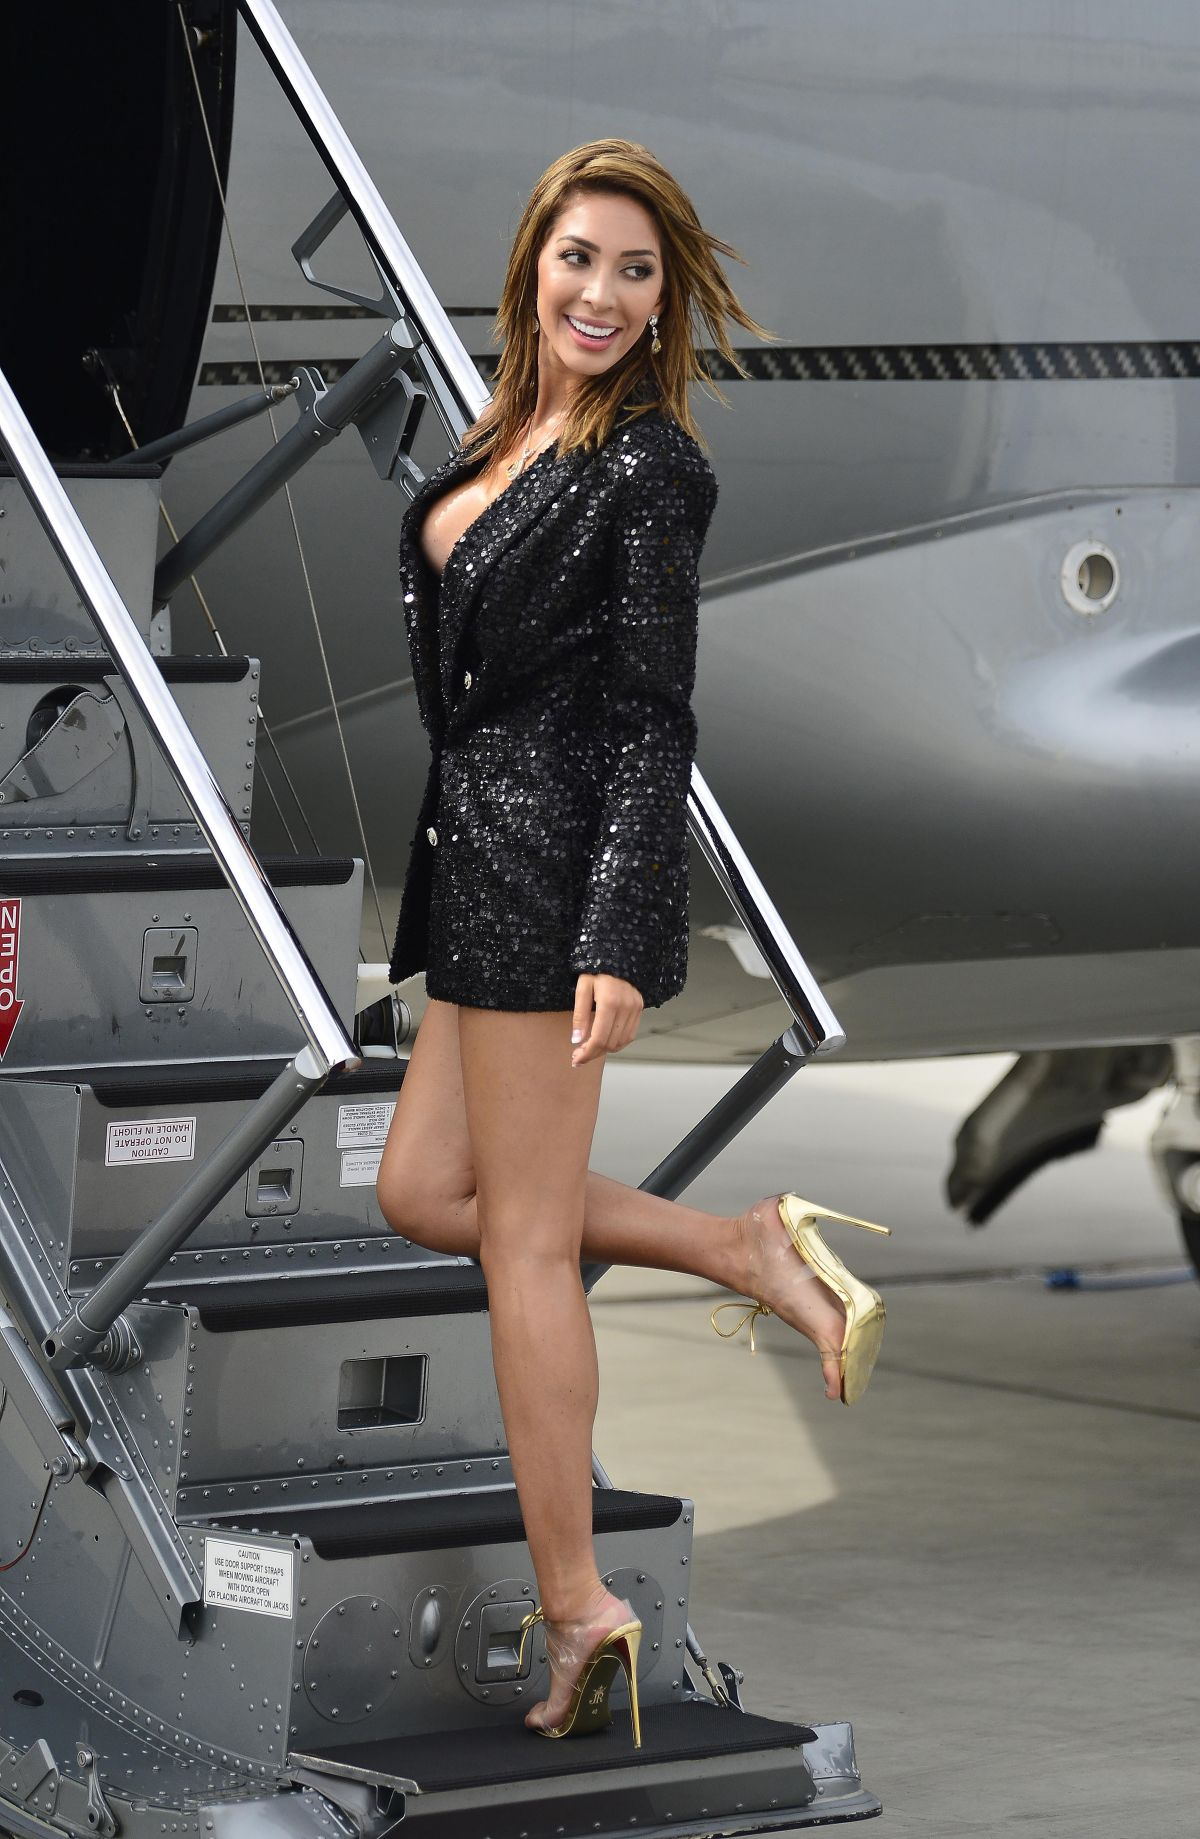 84467033_farrah-abraham-at-van-nuys-private-airstrip-10.jpg